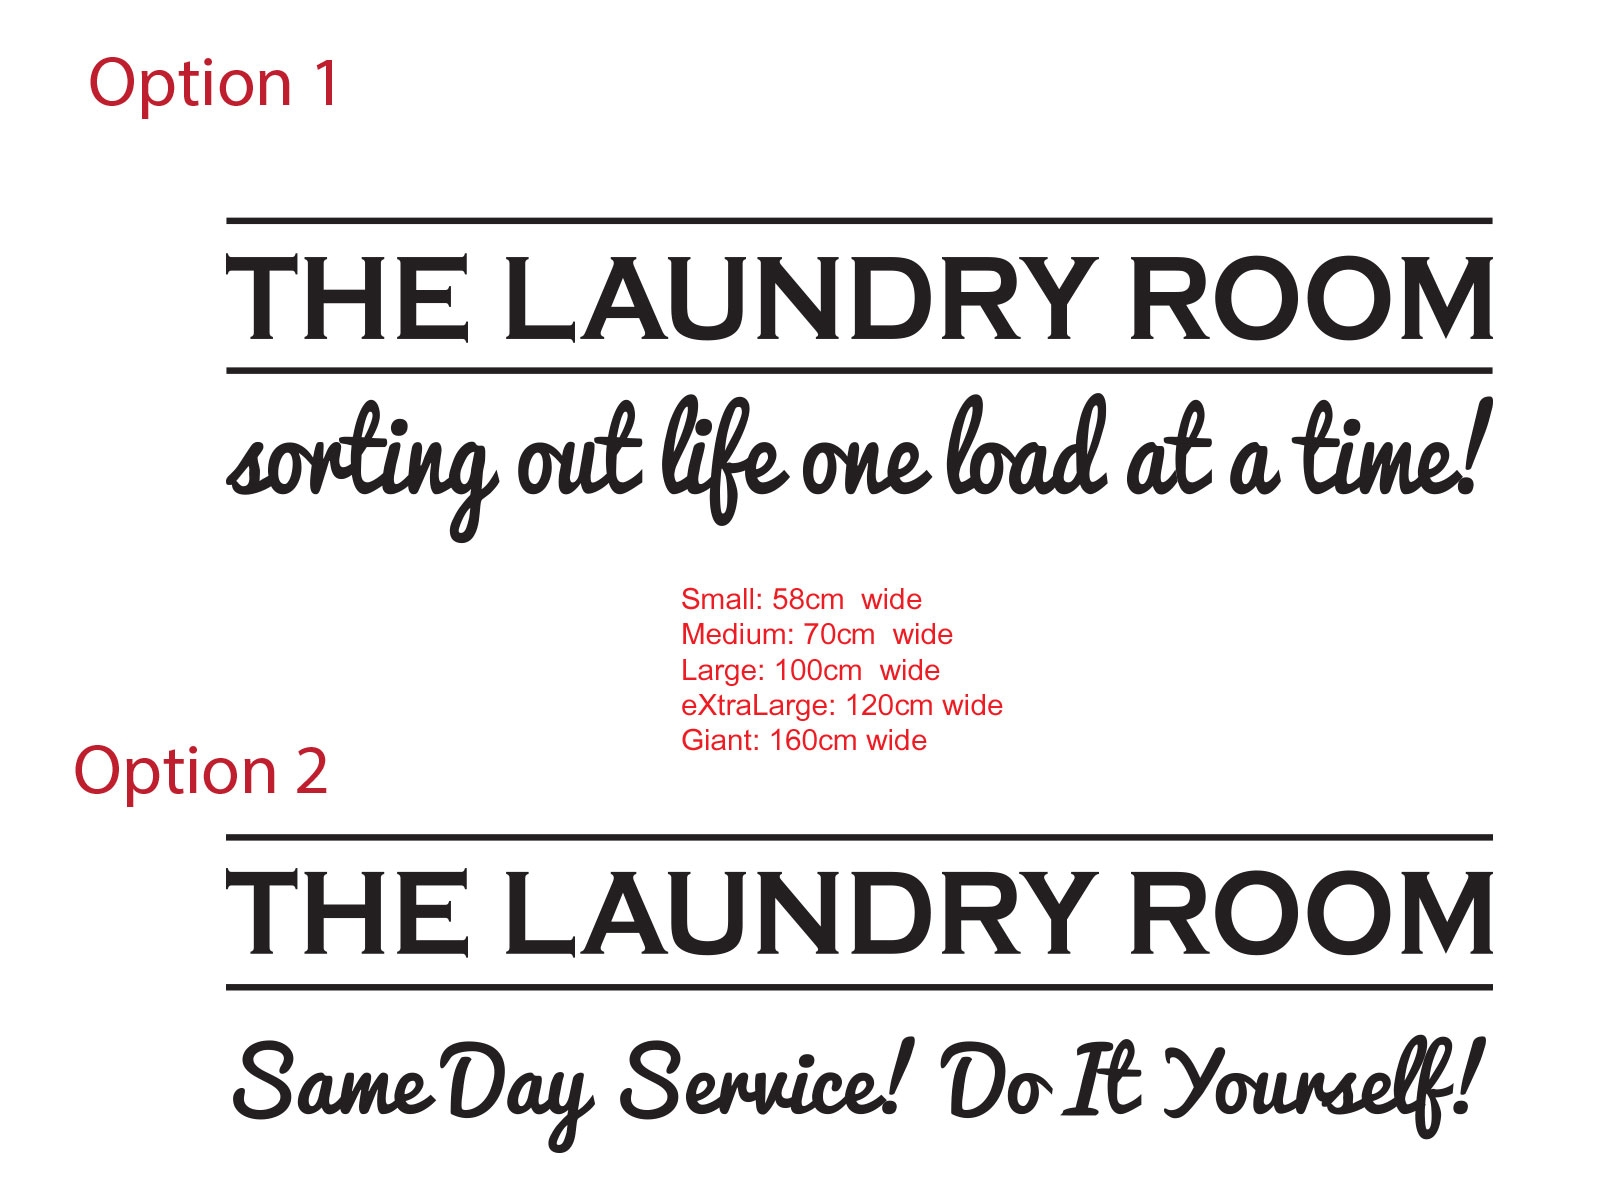 The laundry room sorting out life same day service do it yourself the laundry room sorting out life same day service do it yourself funny vinyl sign decal sticker ozdeco ts polonaiz solutioingenieria Images